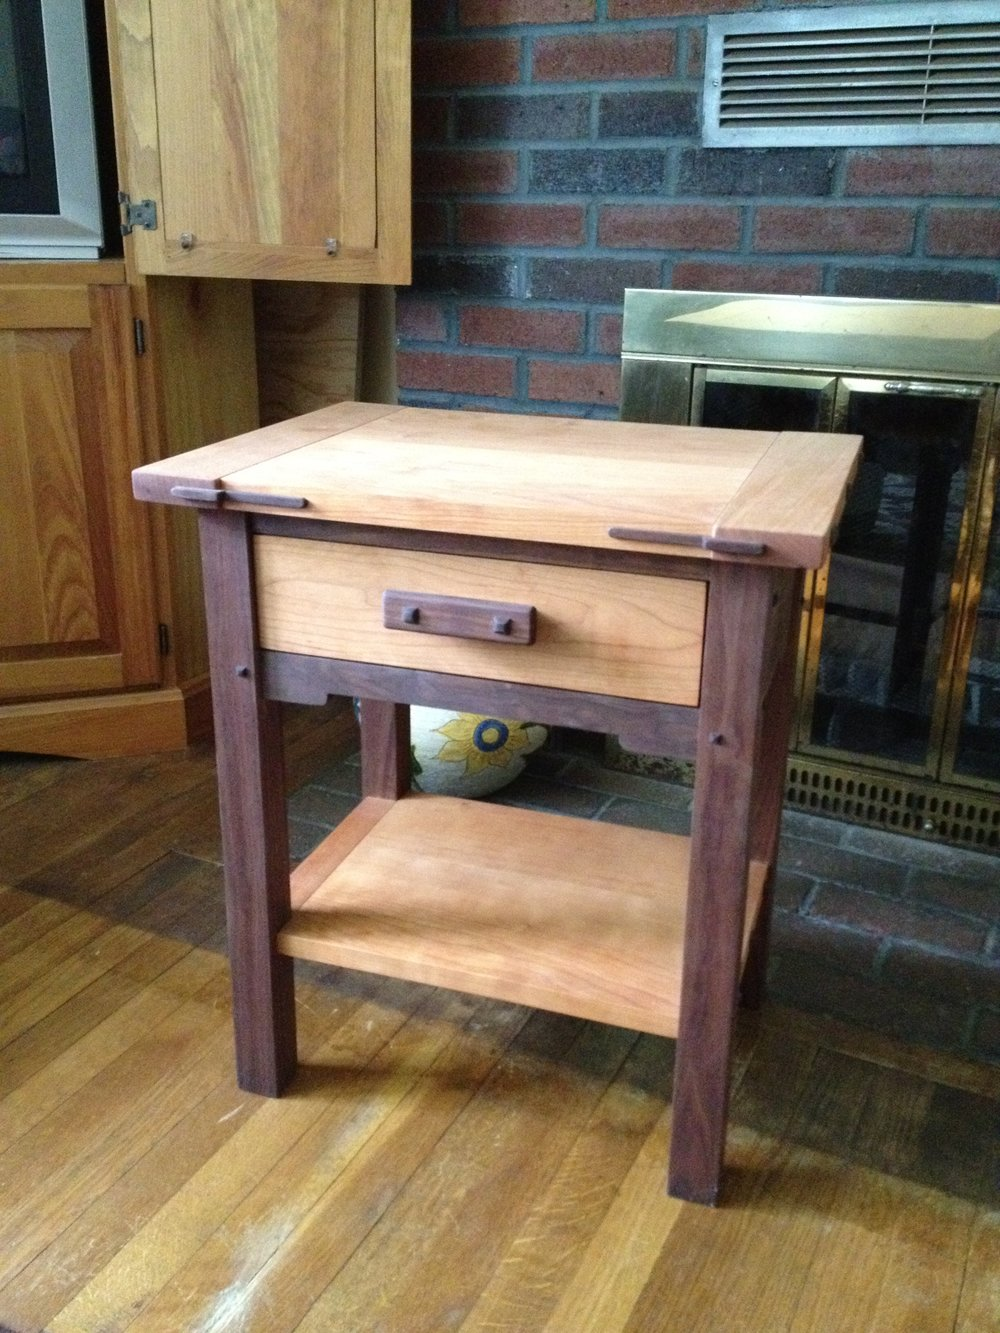 An Arts and Crafts style table I did as part of a furniture making course I took. The course was run by Jeff Lohr ( http://www.jdlohrwood.com/ ), and I highly recommend it if you have an interest in that sort of thing.